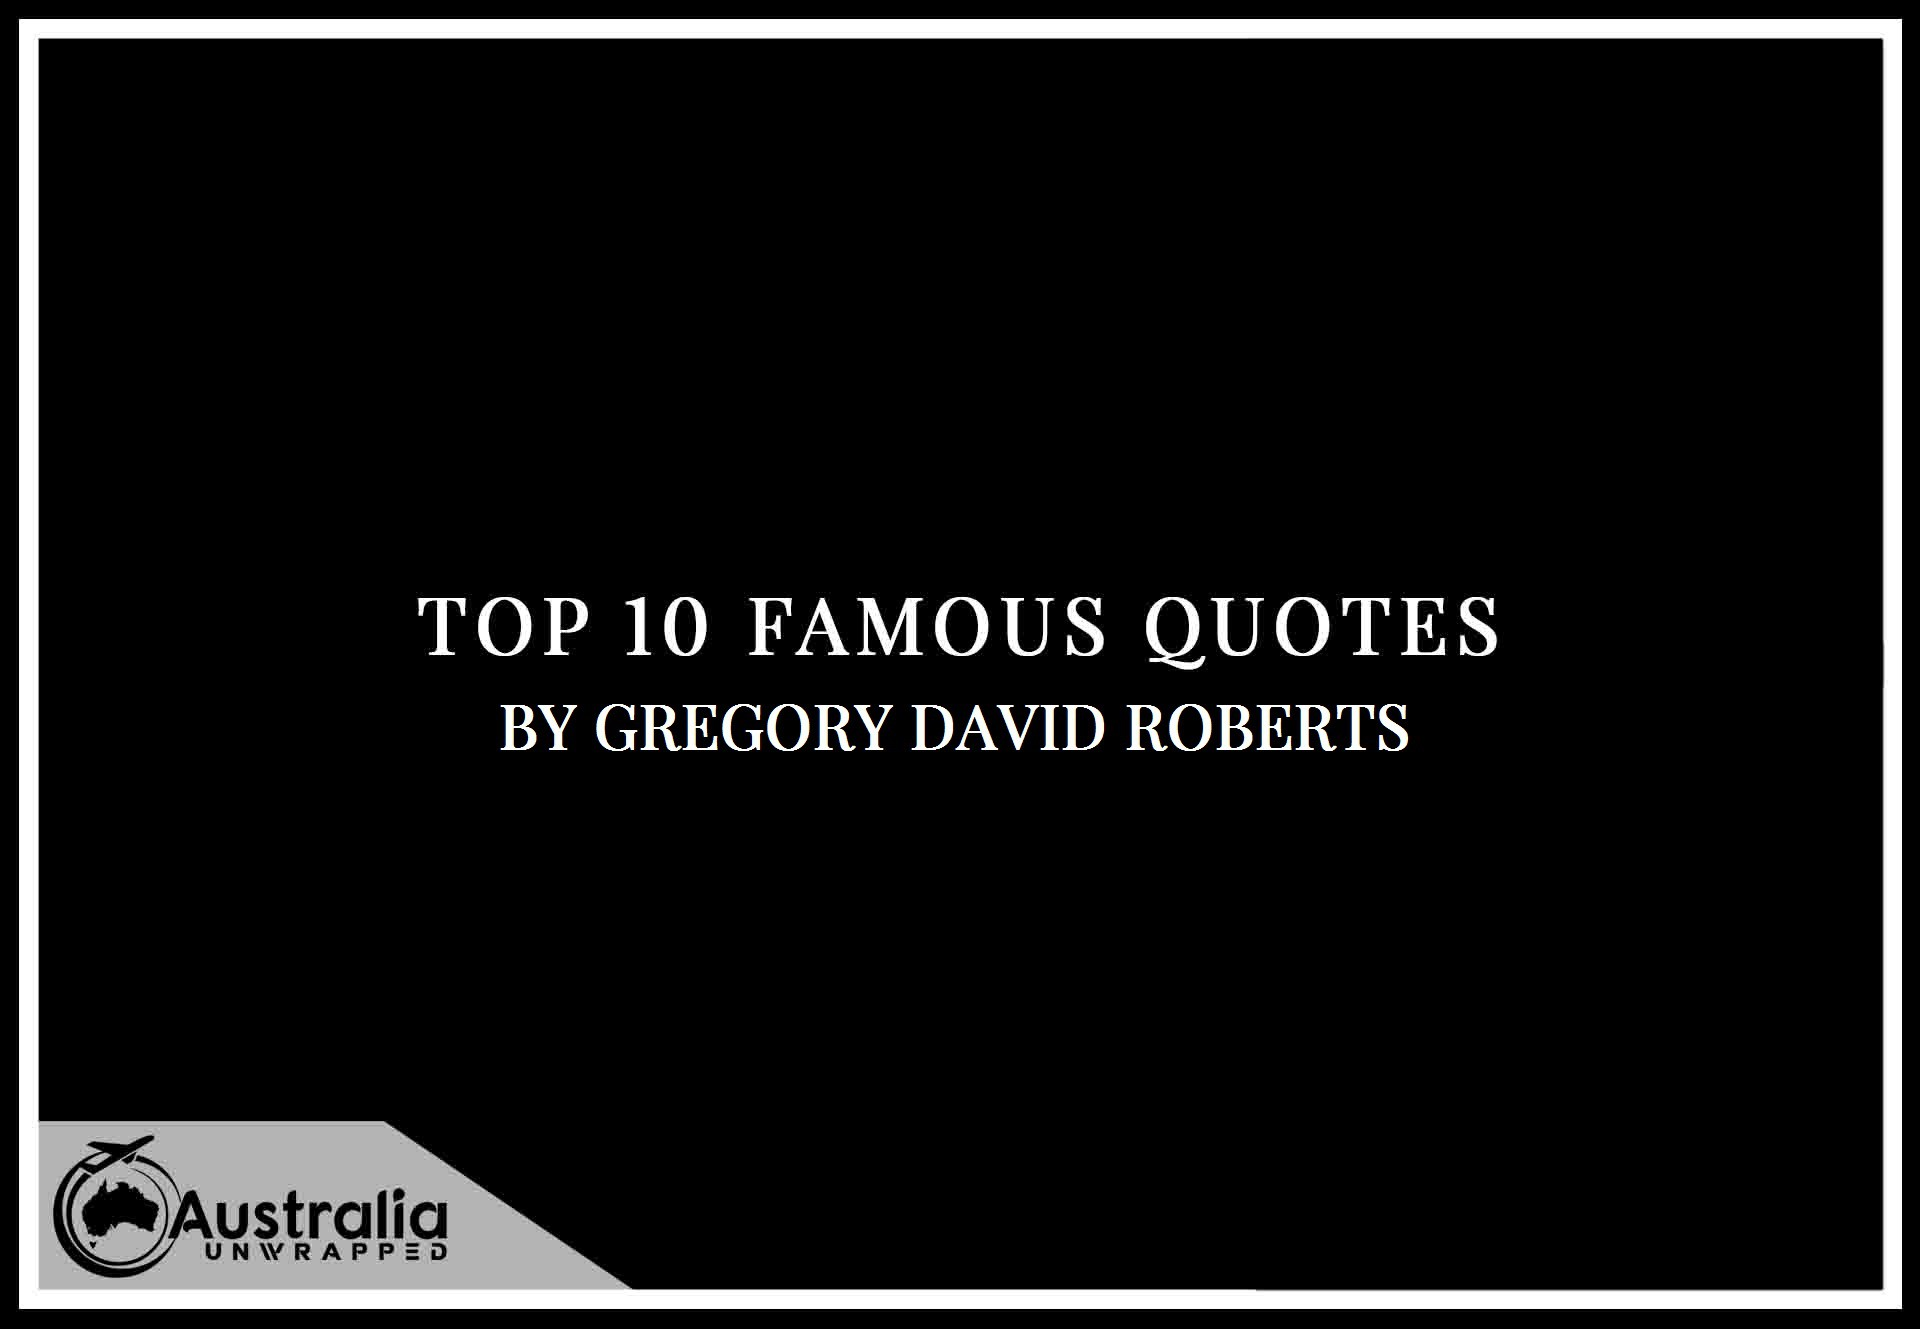 Gregory David Roberts's Top 10 Popular and Famous Quotes